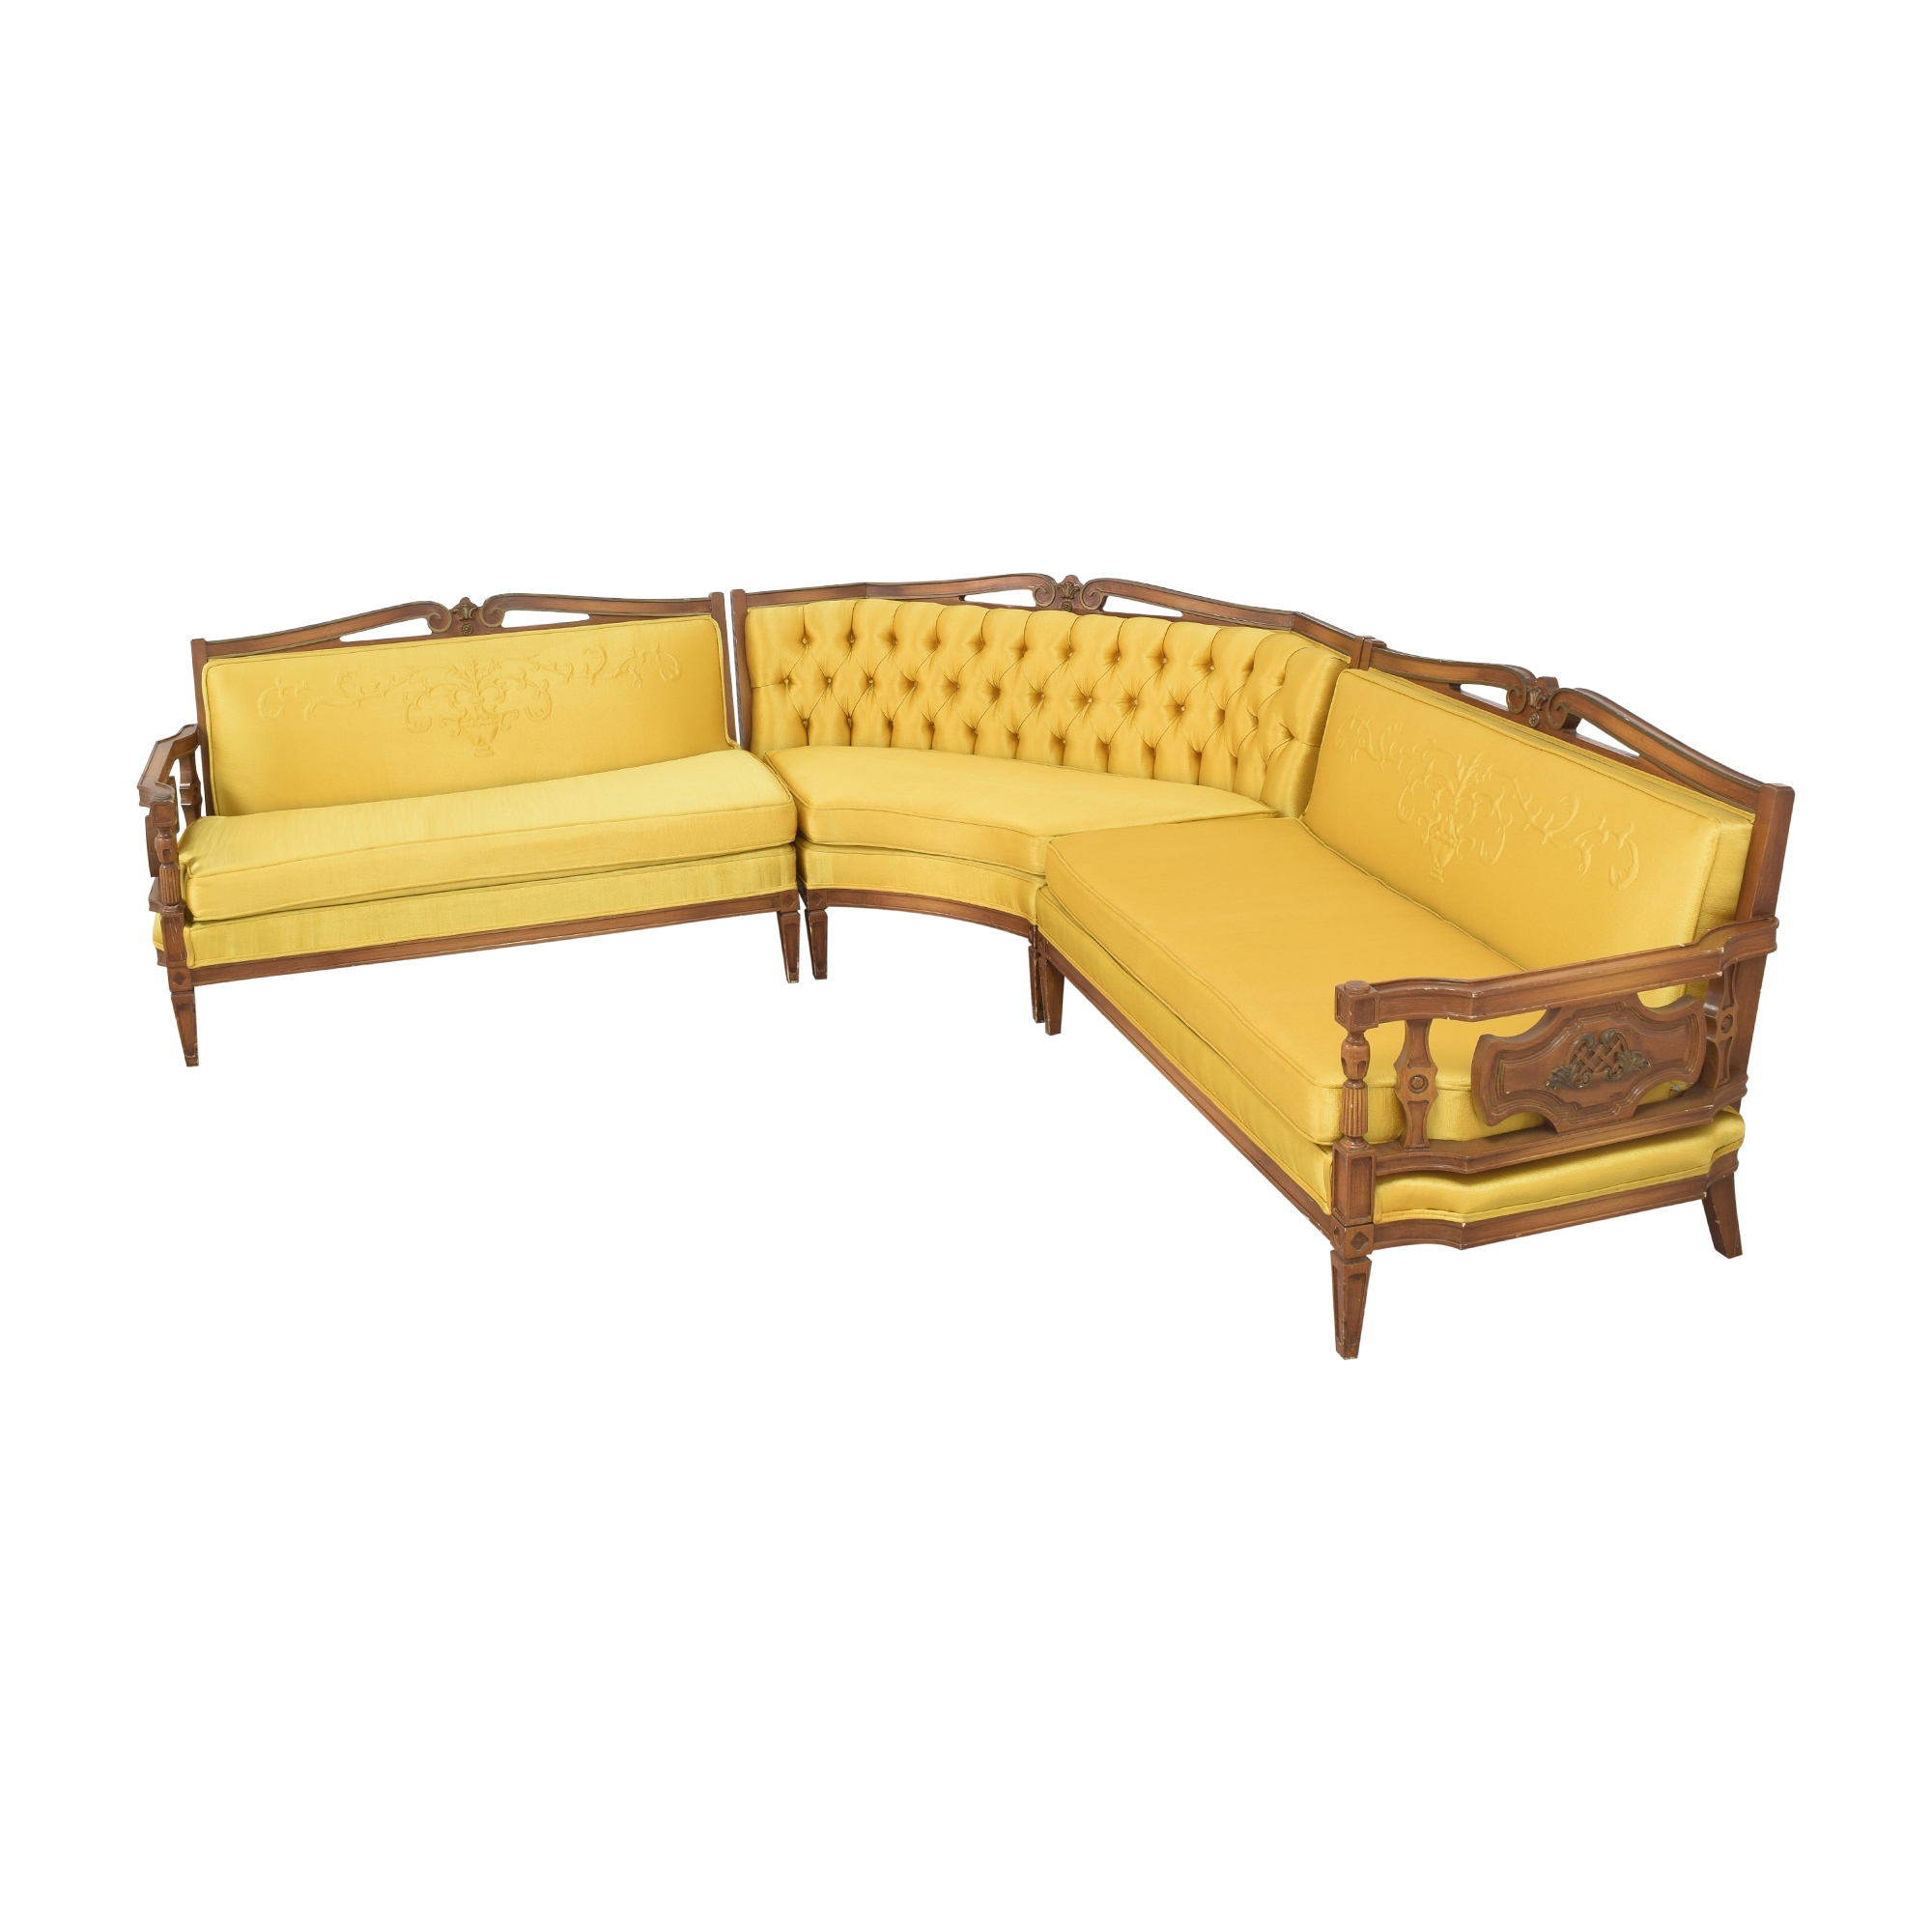 Vintage-Style Corner Sectional Sofa second hand